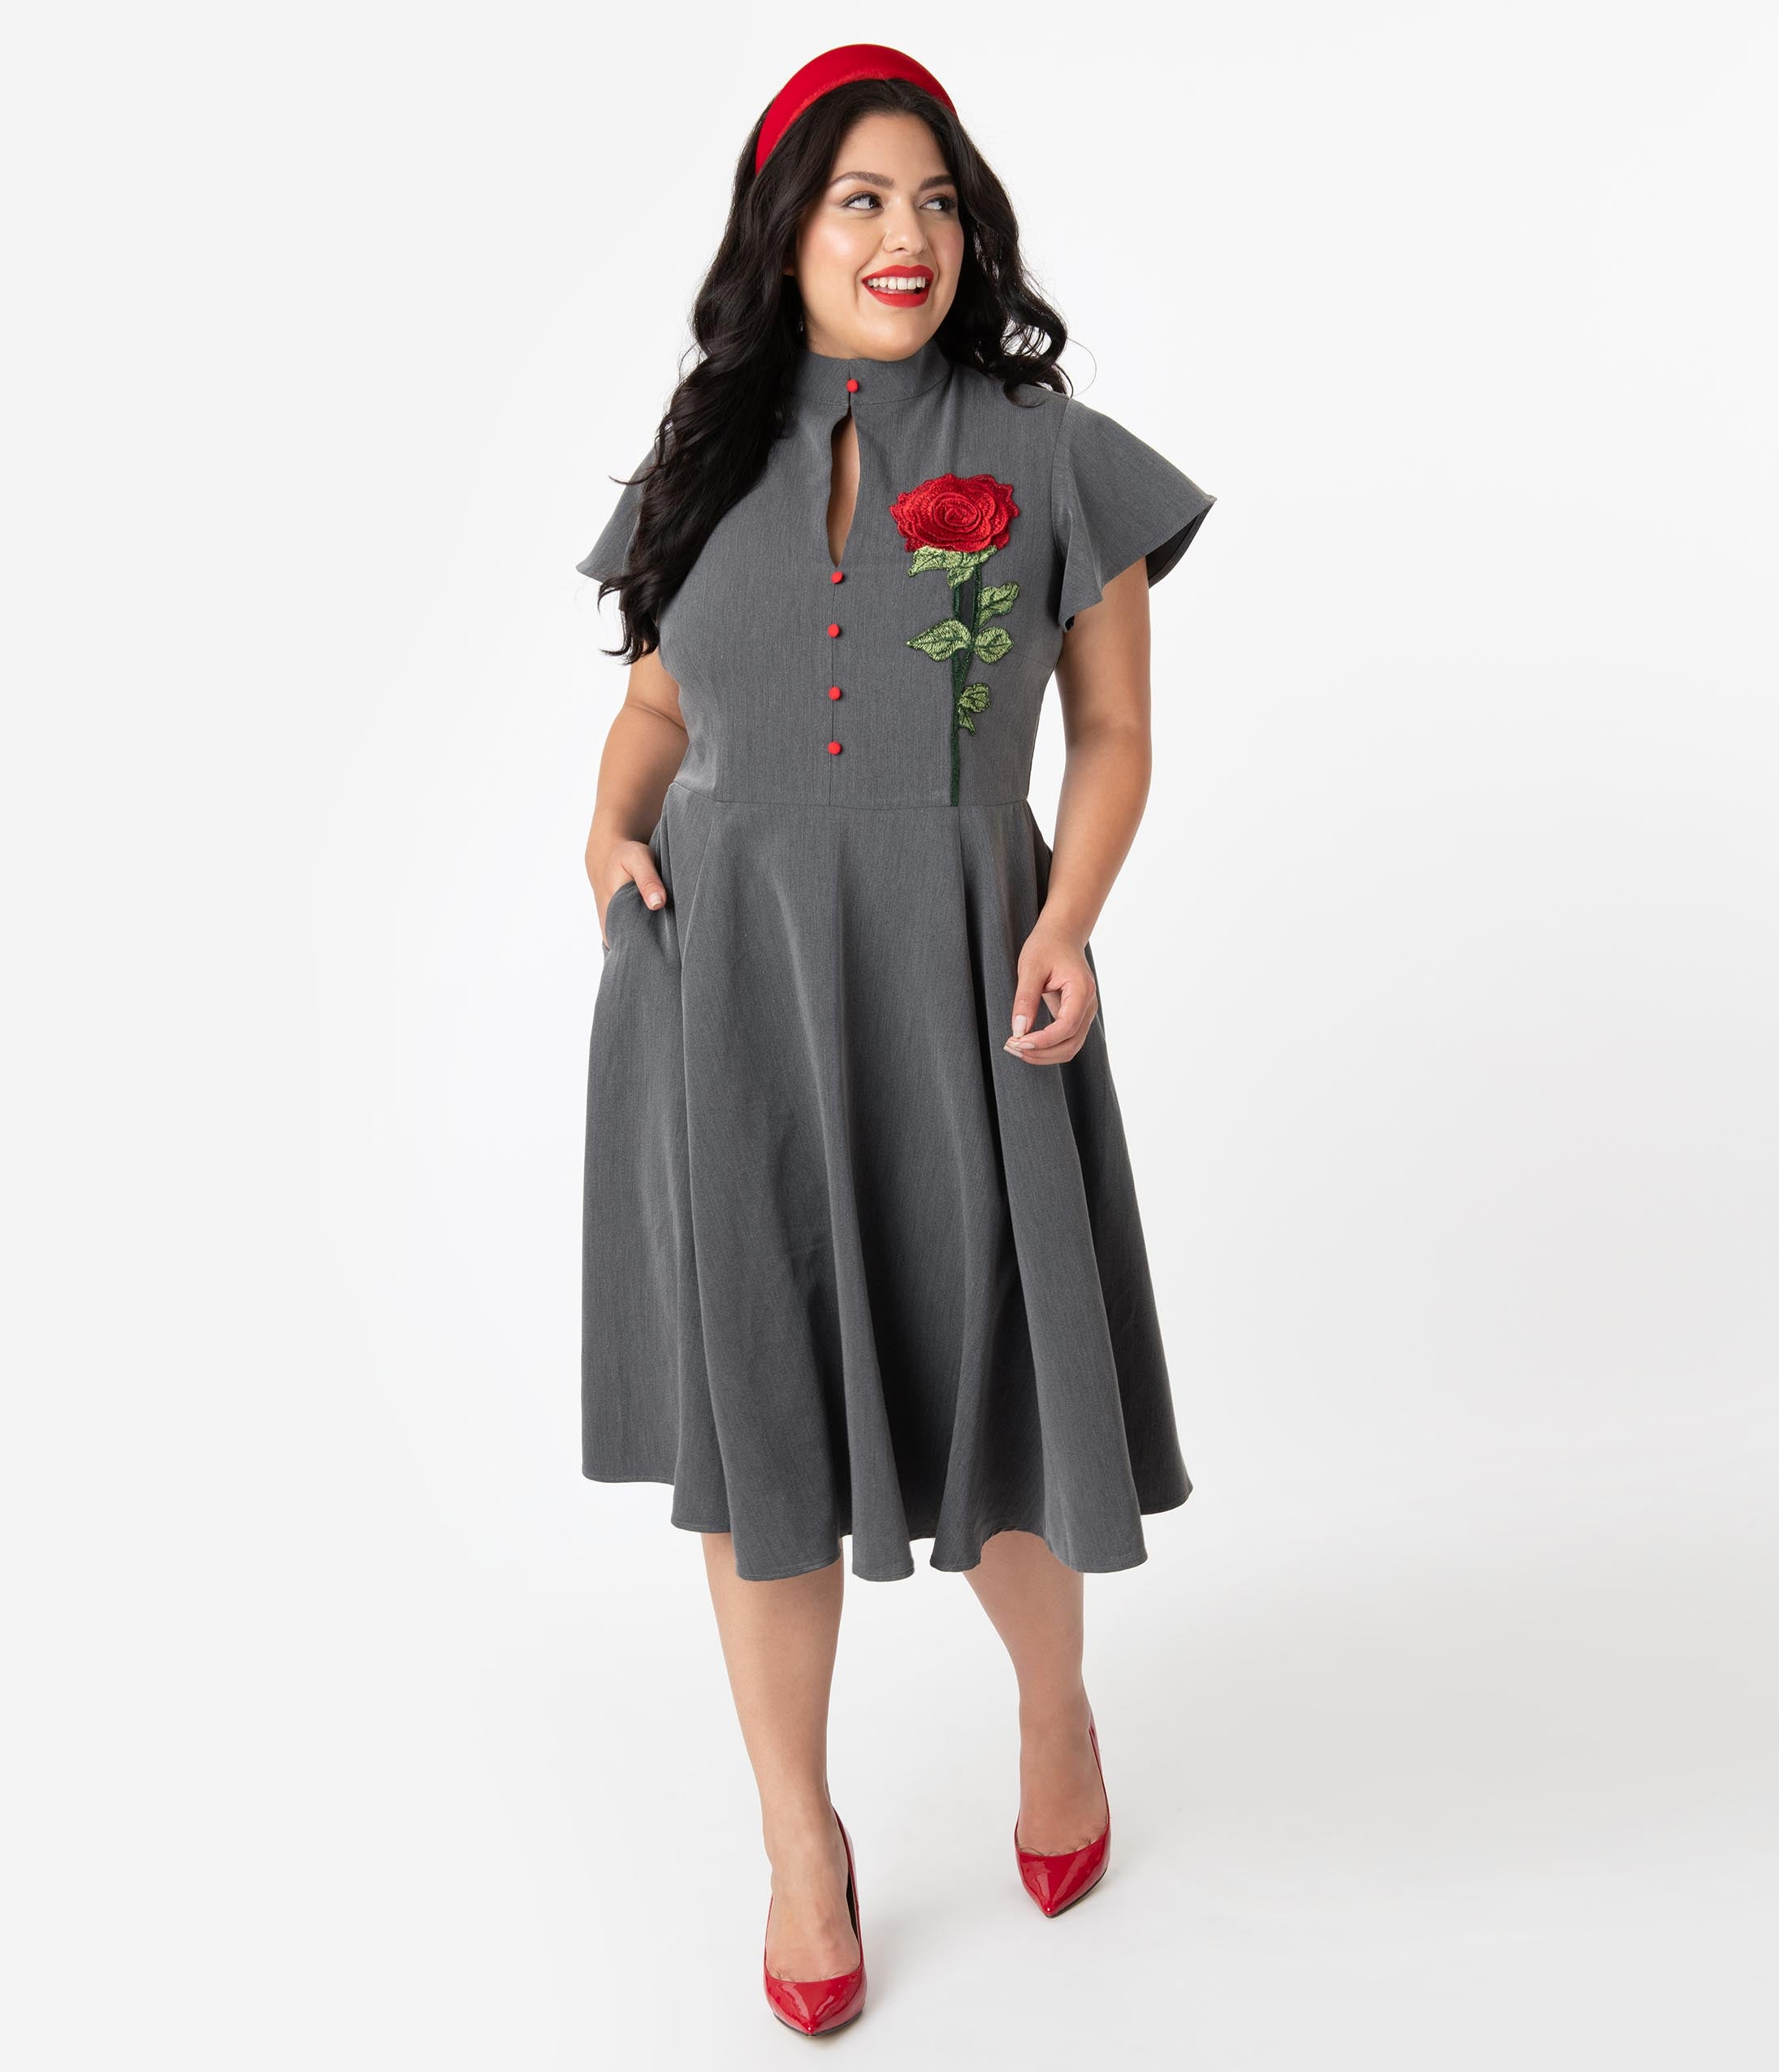 1940s Plus Size Dresses | Swing Dress, Tea Dress Unique Vintage Plus Size Grey  Embroidered Red Rose Baltimore Swing Dress $98.00 AT vintagedancer.com